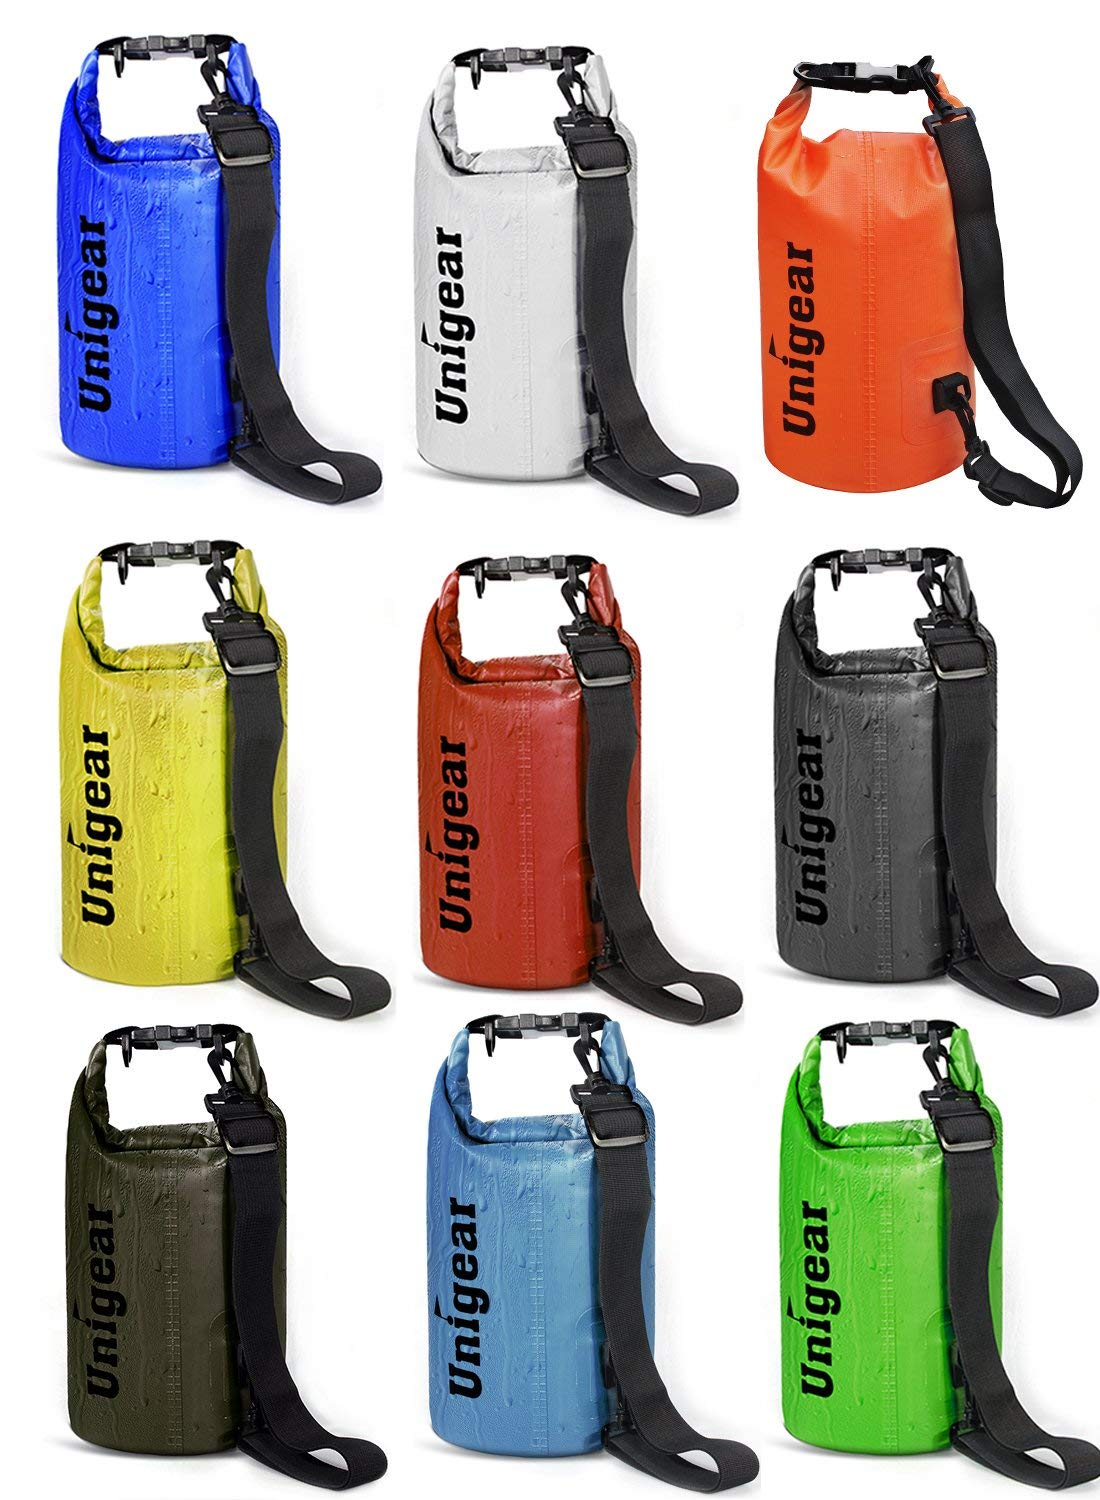 Unigear Floating Waterproof Dry Bag with Waterproof Phone Case (6 Sizes & 9 Colors) from - $5.69 + Free Shipping